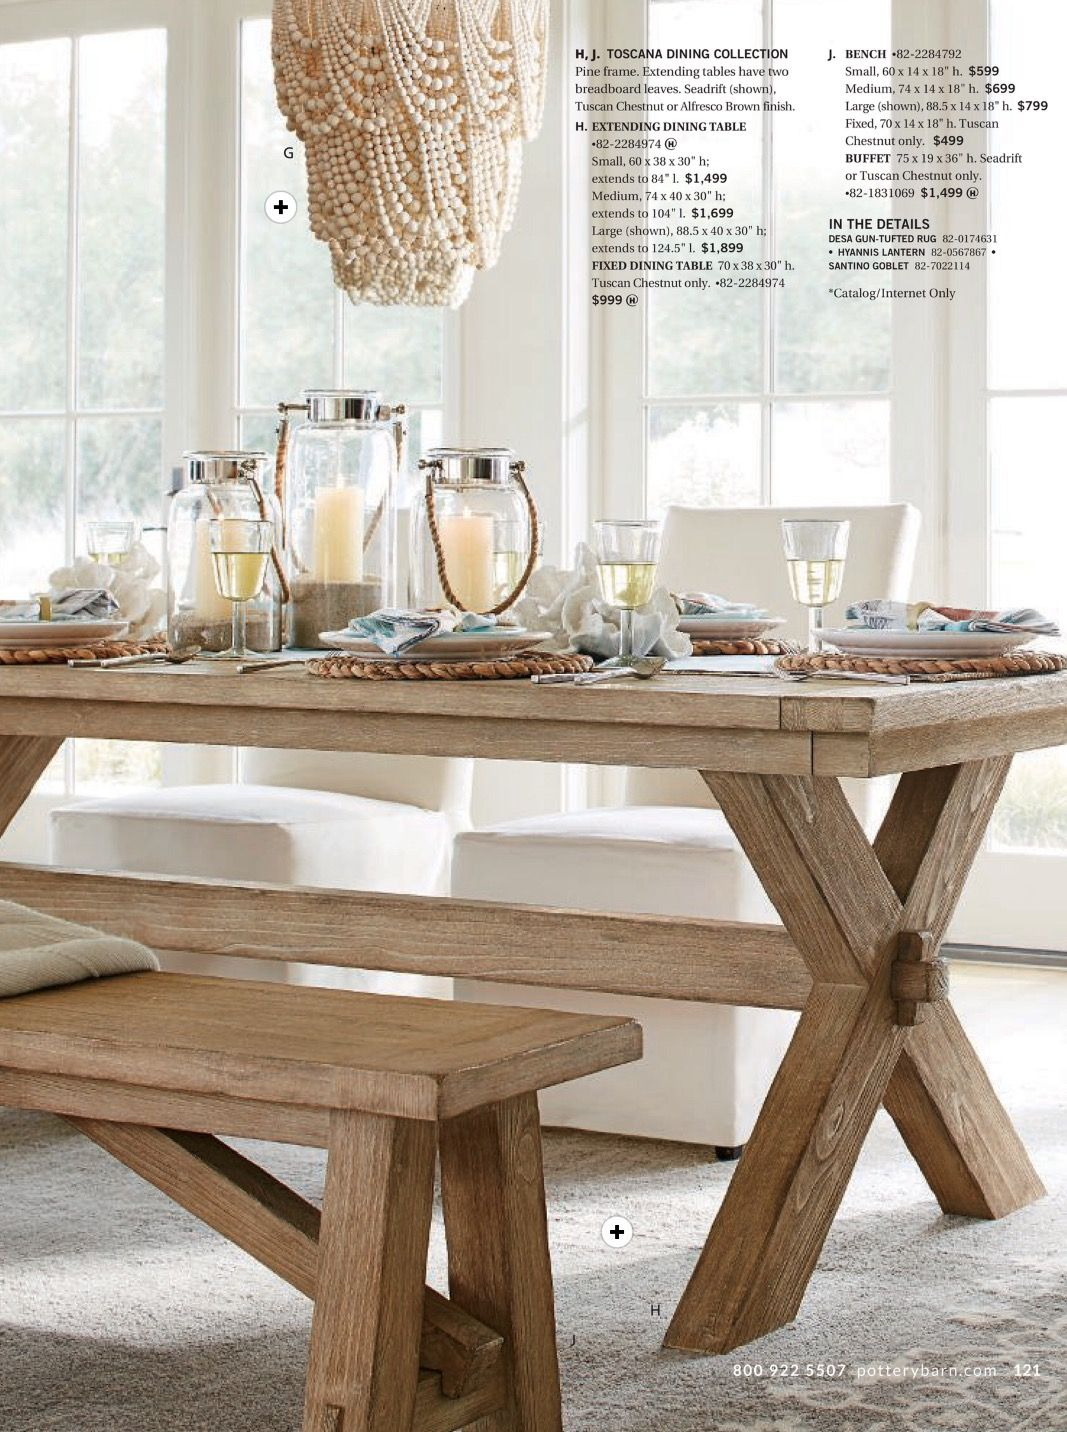 Toscano Dining Table And Bench In Seadrift, Amelia Wood Bead Intended For Most Recently Released Seadrift Benchwright Extending Dining Tables (View 8 of 25)